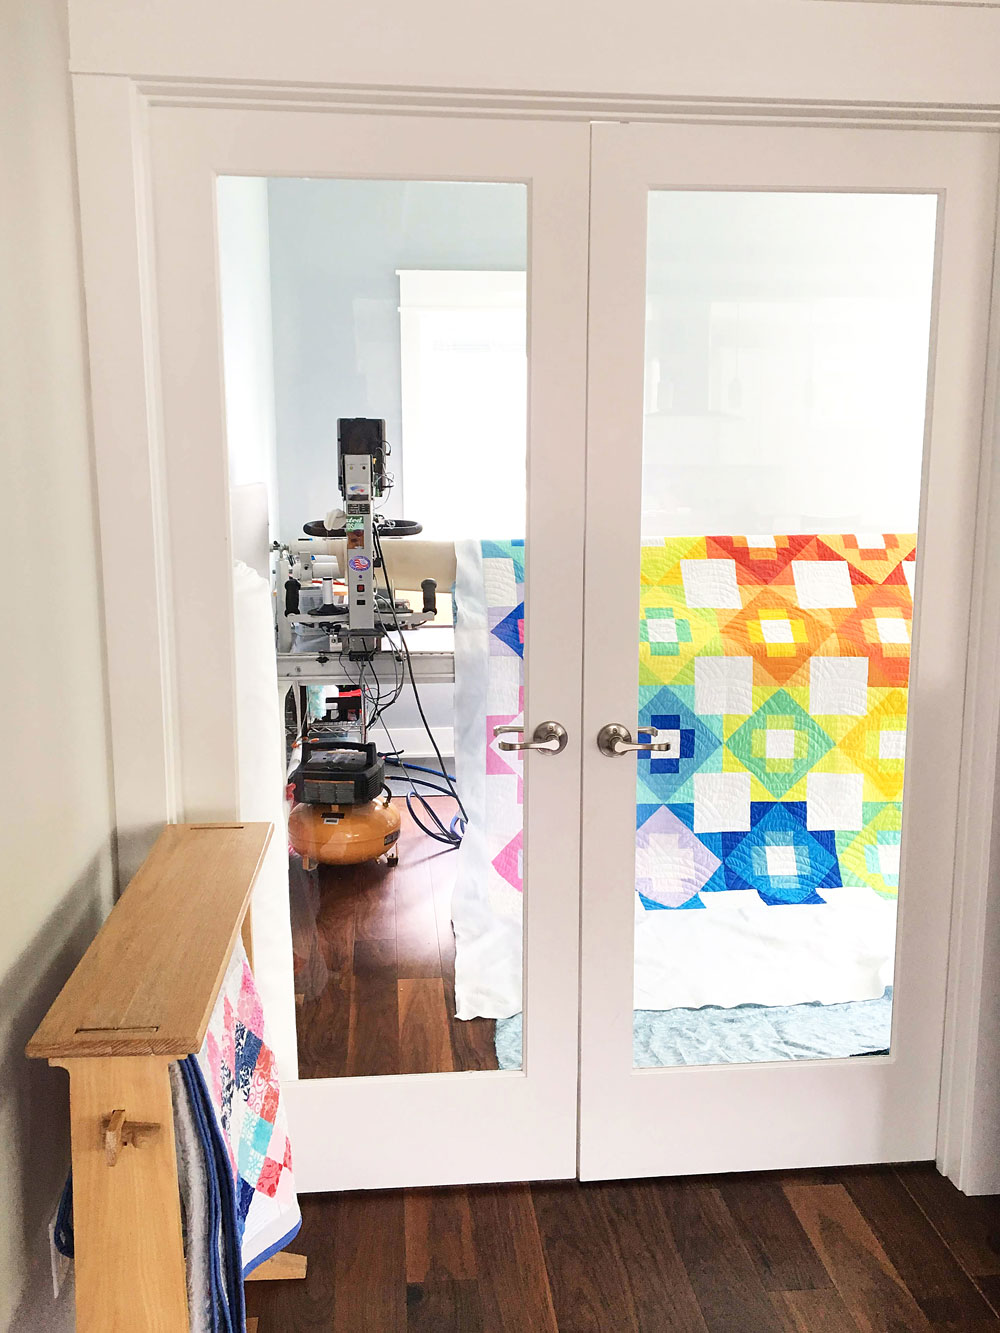 Do you have questions about hiring a longarm quilter? This in-depth guide answers all of those questions from fabric to price to turnaround time. | Suzy Quilts https://suzyquilts.com/hiring-a-longarm-quilter-an-in-depth-guide